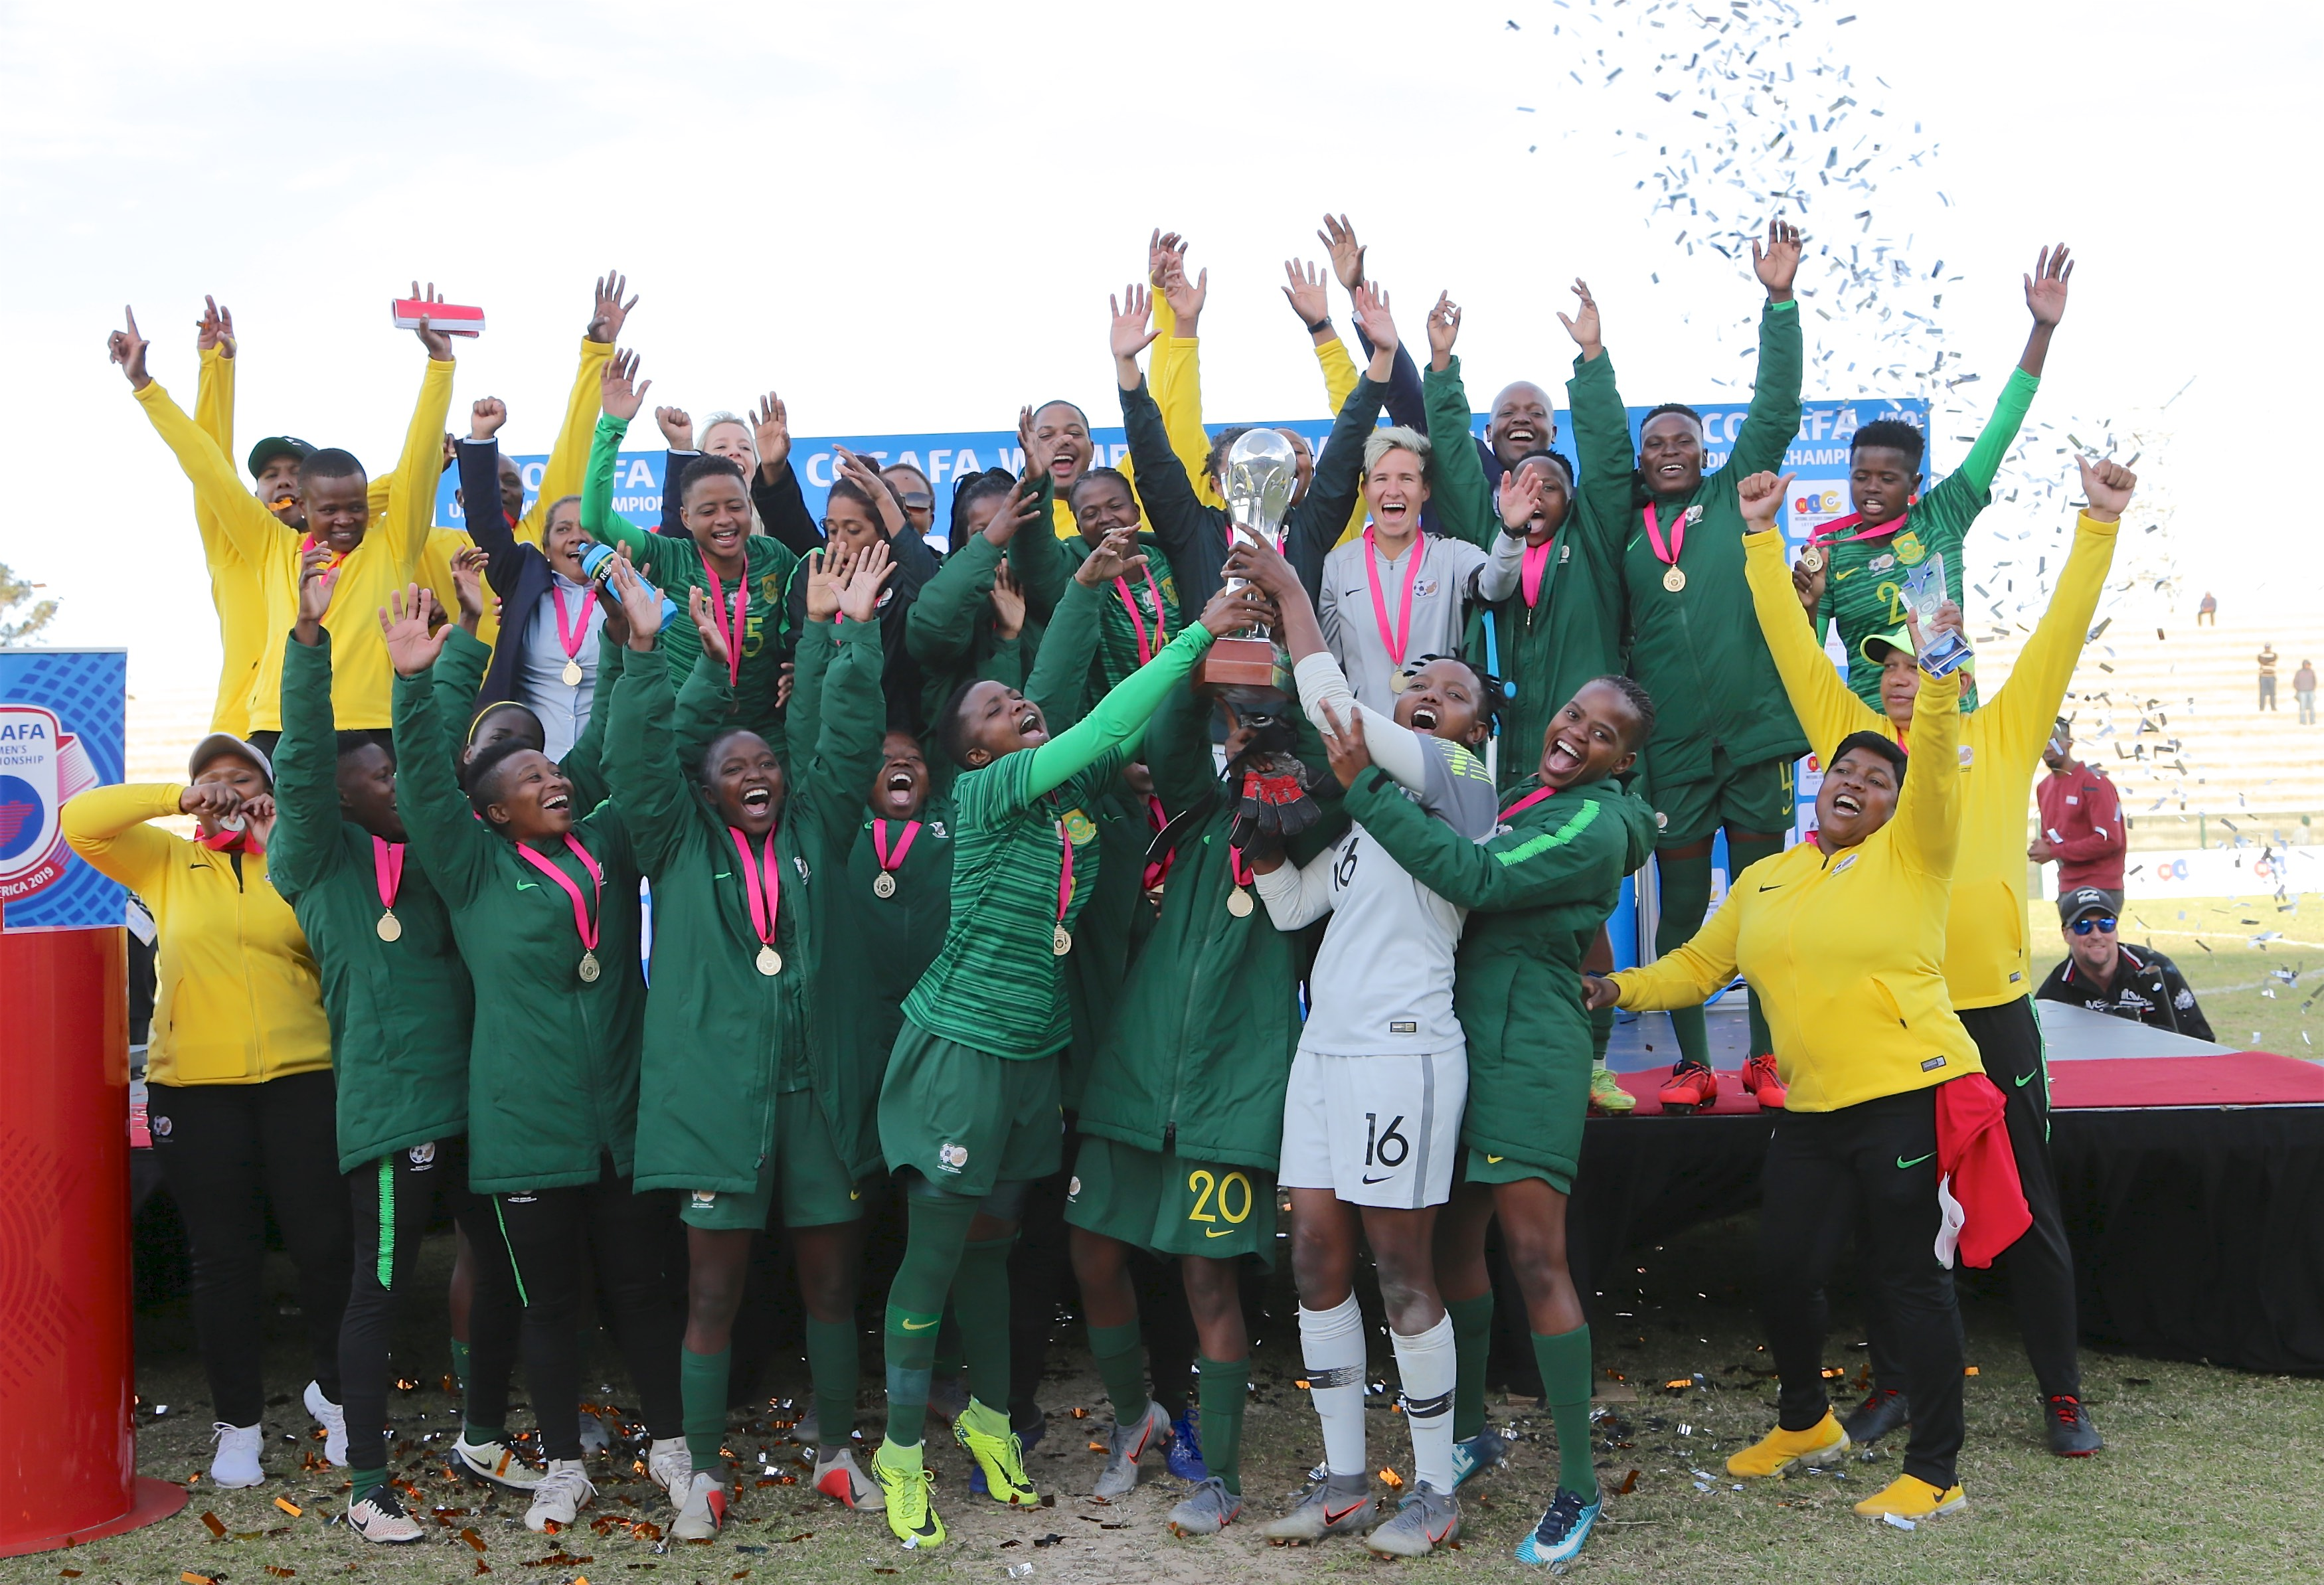 Banyana Banyana win the 2019 COSAFA Women's Championship final match against Zambia at Wolfson Stadium on August 11, 2019 in Port Elizabeth, South Africa.